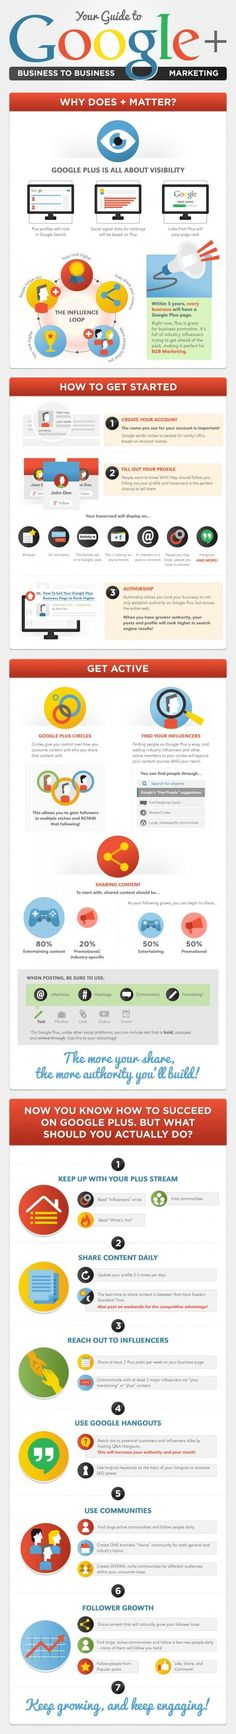 Your Guide to Google+ B2B Marketing.